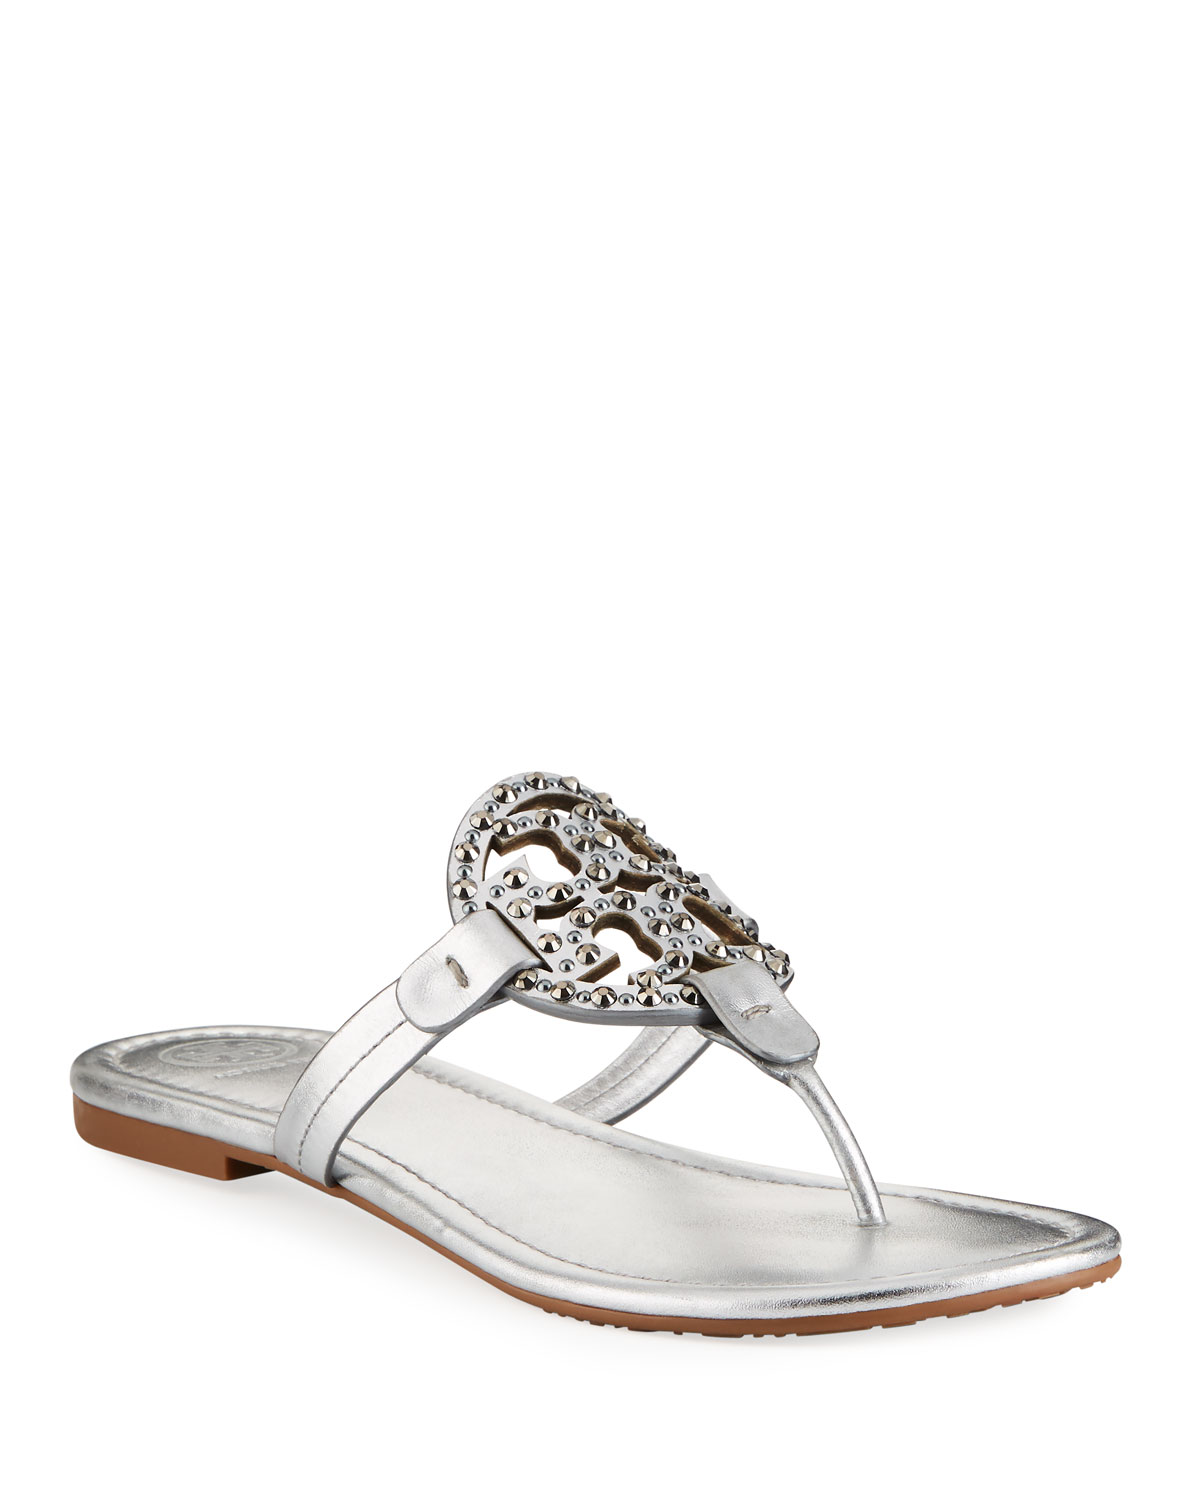 b92796ab2 Tory BurchMiller Flat Metallic Leather Slide Sandals with Embellished Logo